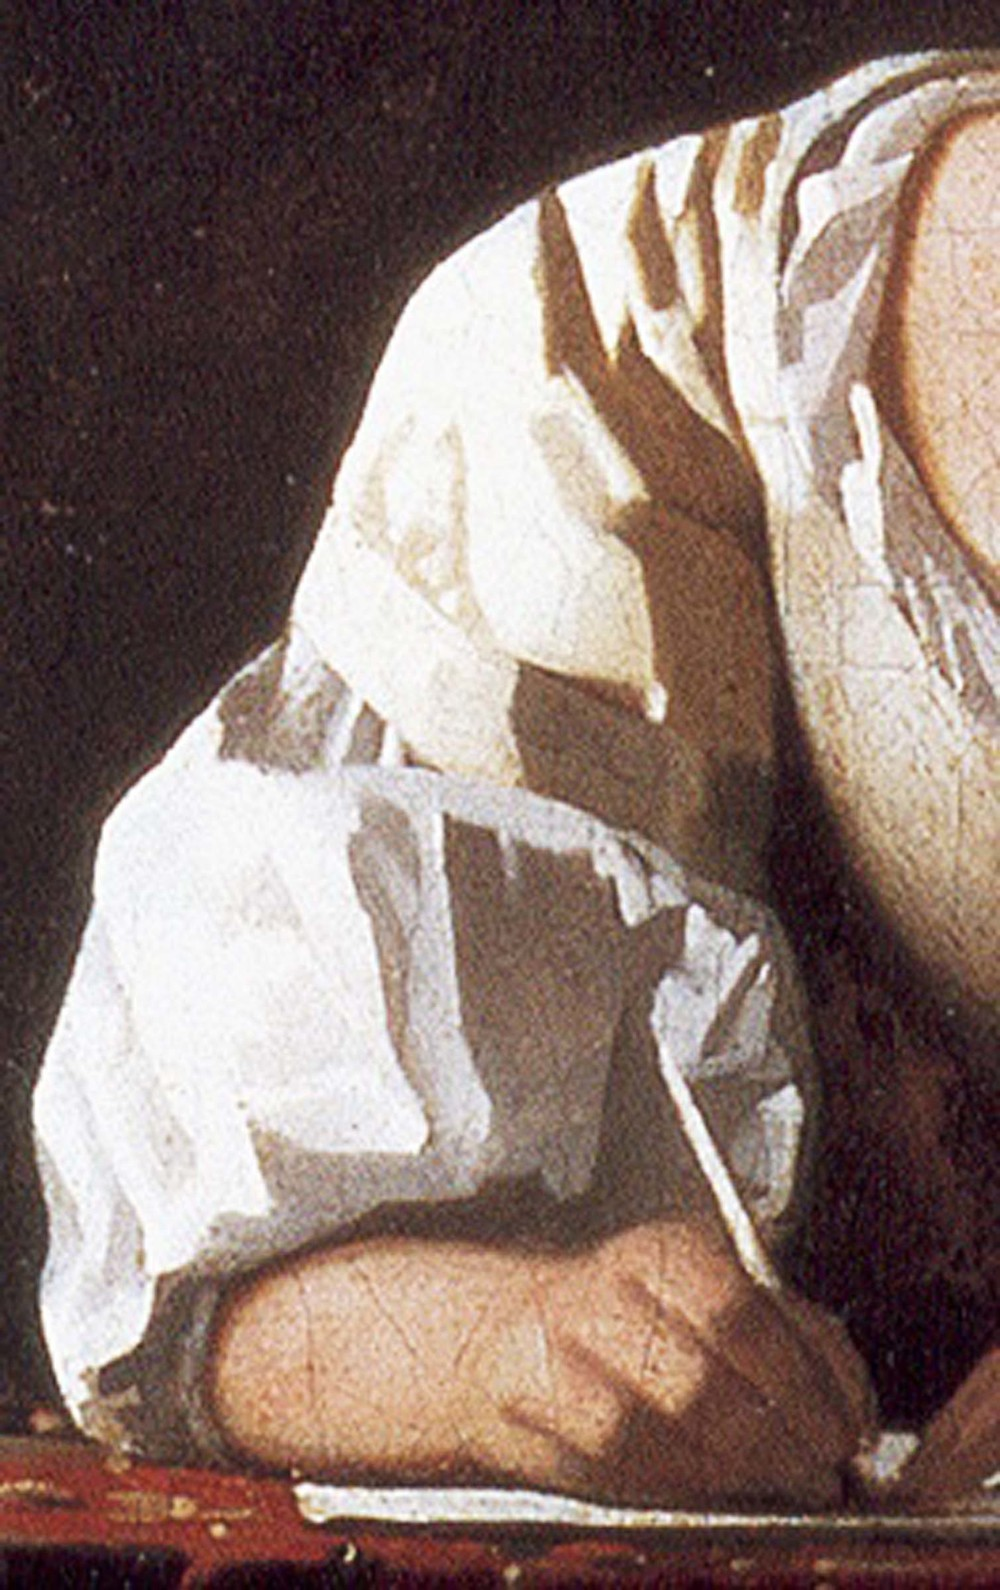 detail of a  vermeer  illustrating his particular genius in painting fabric and flesh.